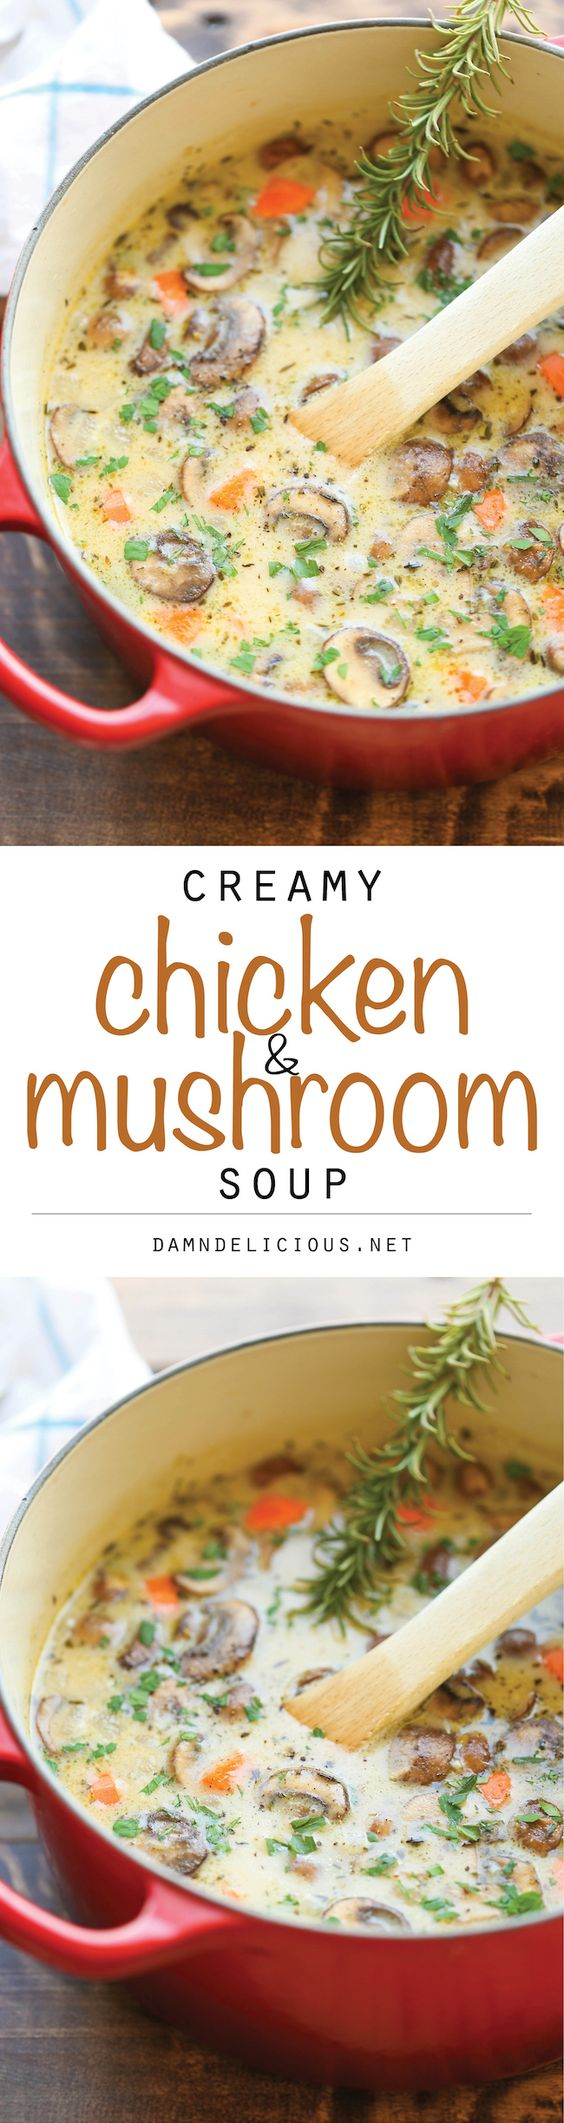 Creamy Chicken and Mushroom Soup - So cozy, so comforting and just so creamy. Best of all, this is made in 30 min from start to finish - so quick and easy!: